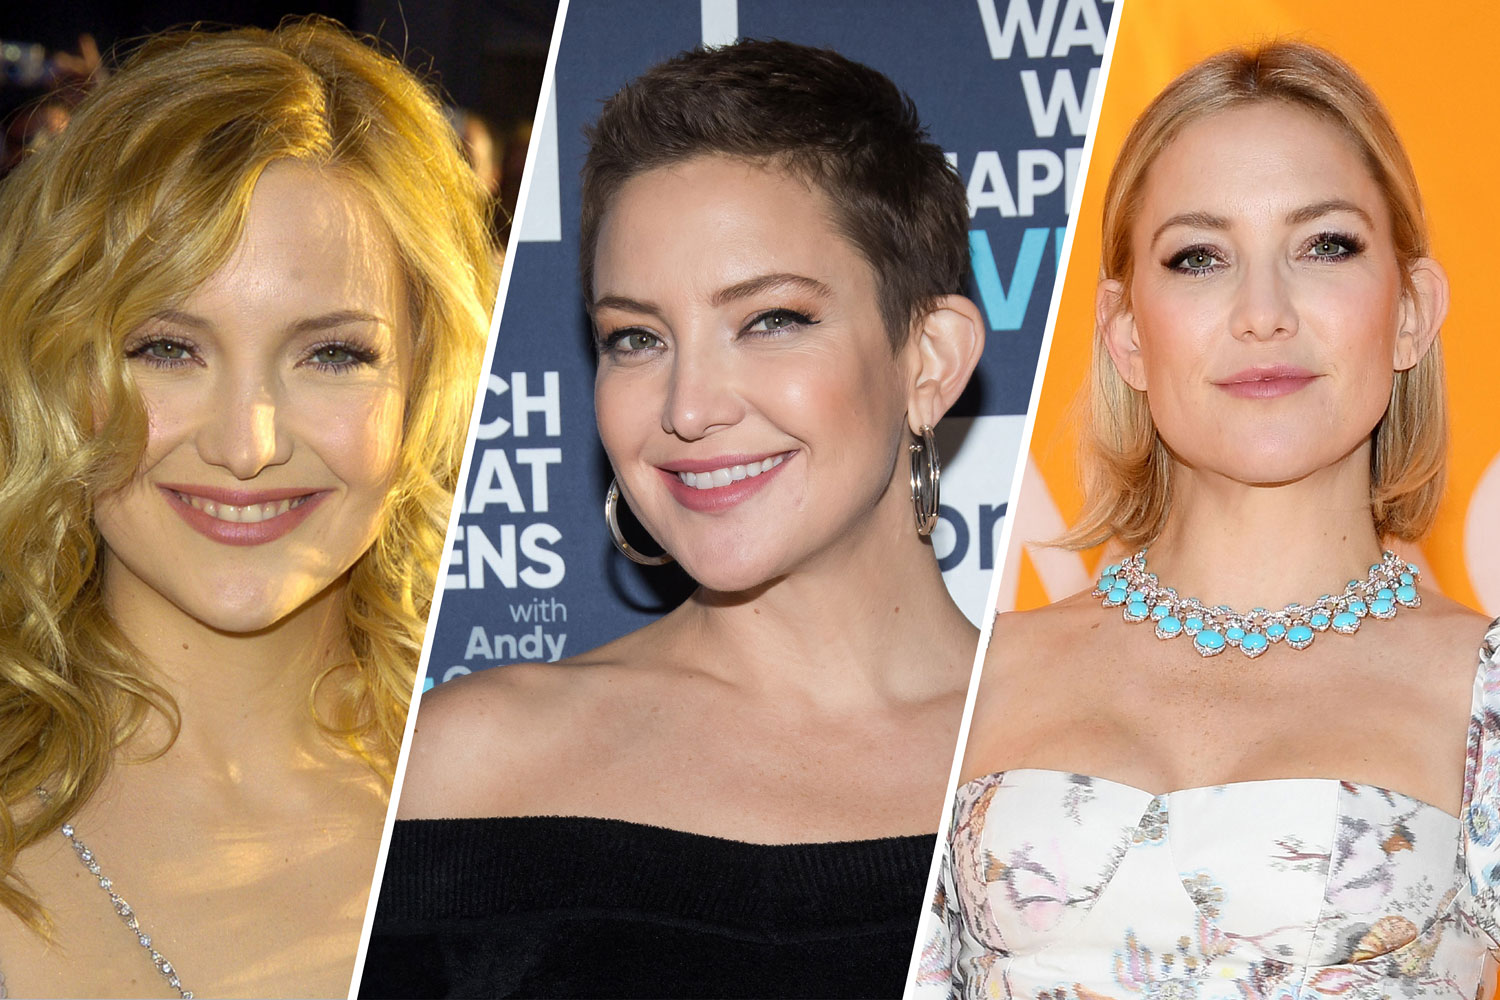 Kate Hudson Hairstyles Short Hair Shaved Head More Best Worst Marie Claire Australia